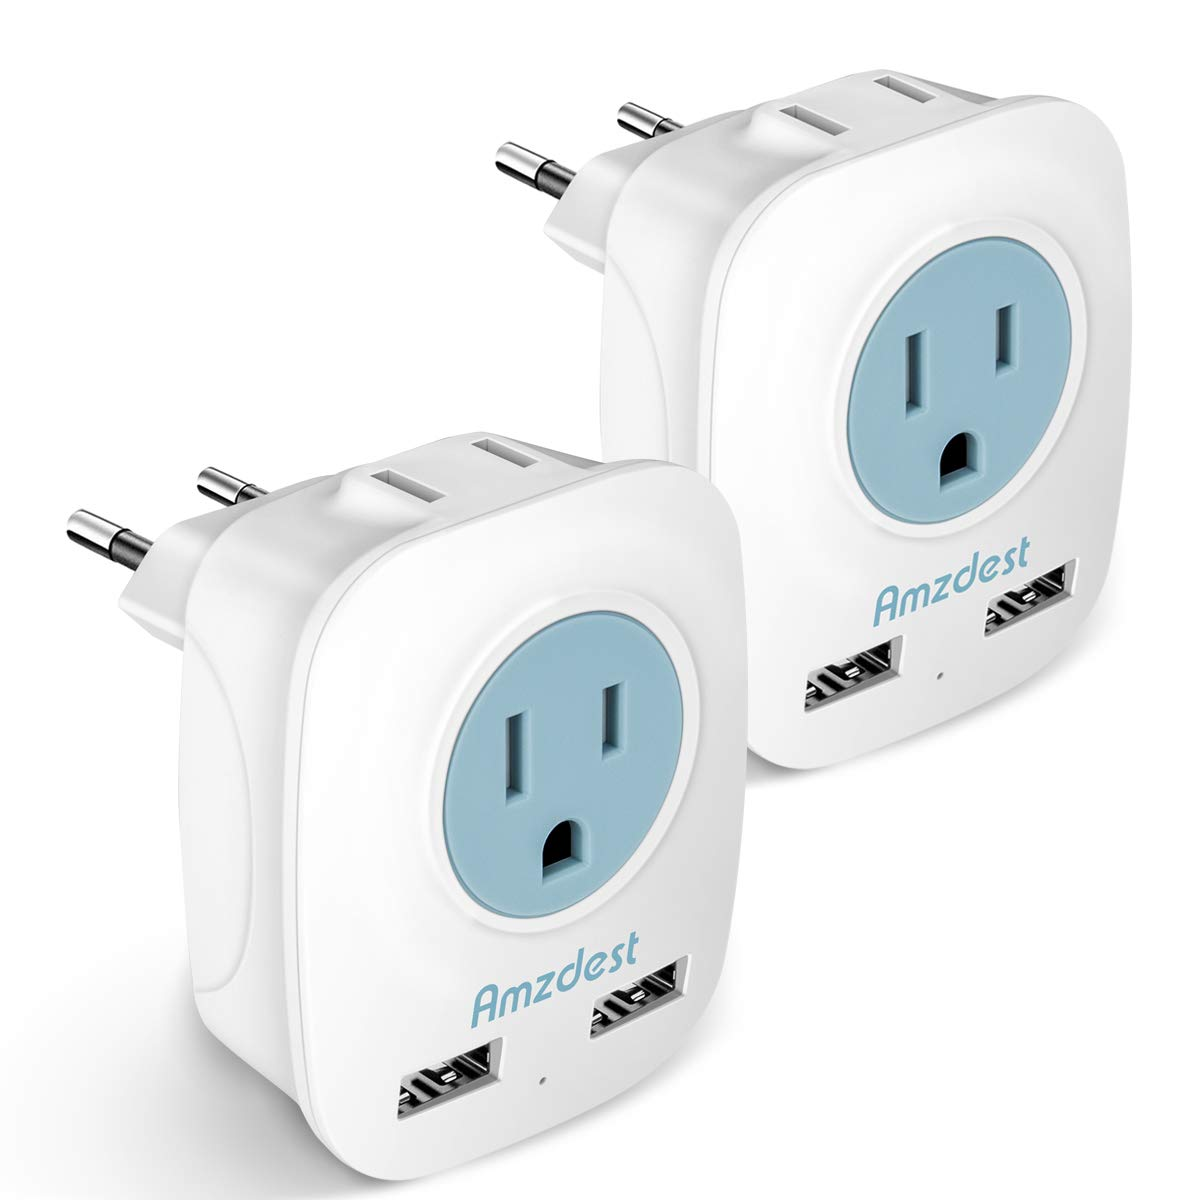 European plug adapter 2 Pack, Amzdest International Power Adapter with 2 USB& 2 AC Port, 4 in 1 Outlet Adapter for US to Most European Outlets Italy/Spain/France/Germany for High Power Appliances